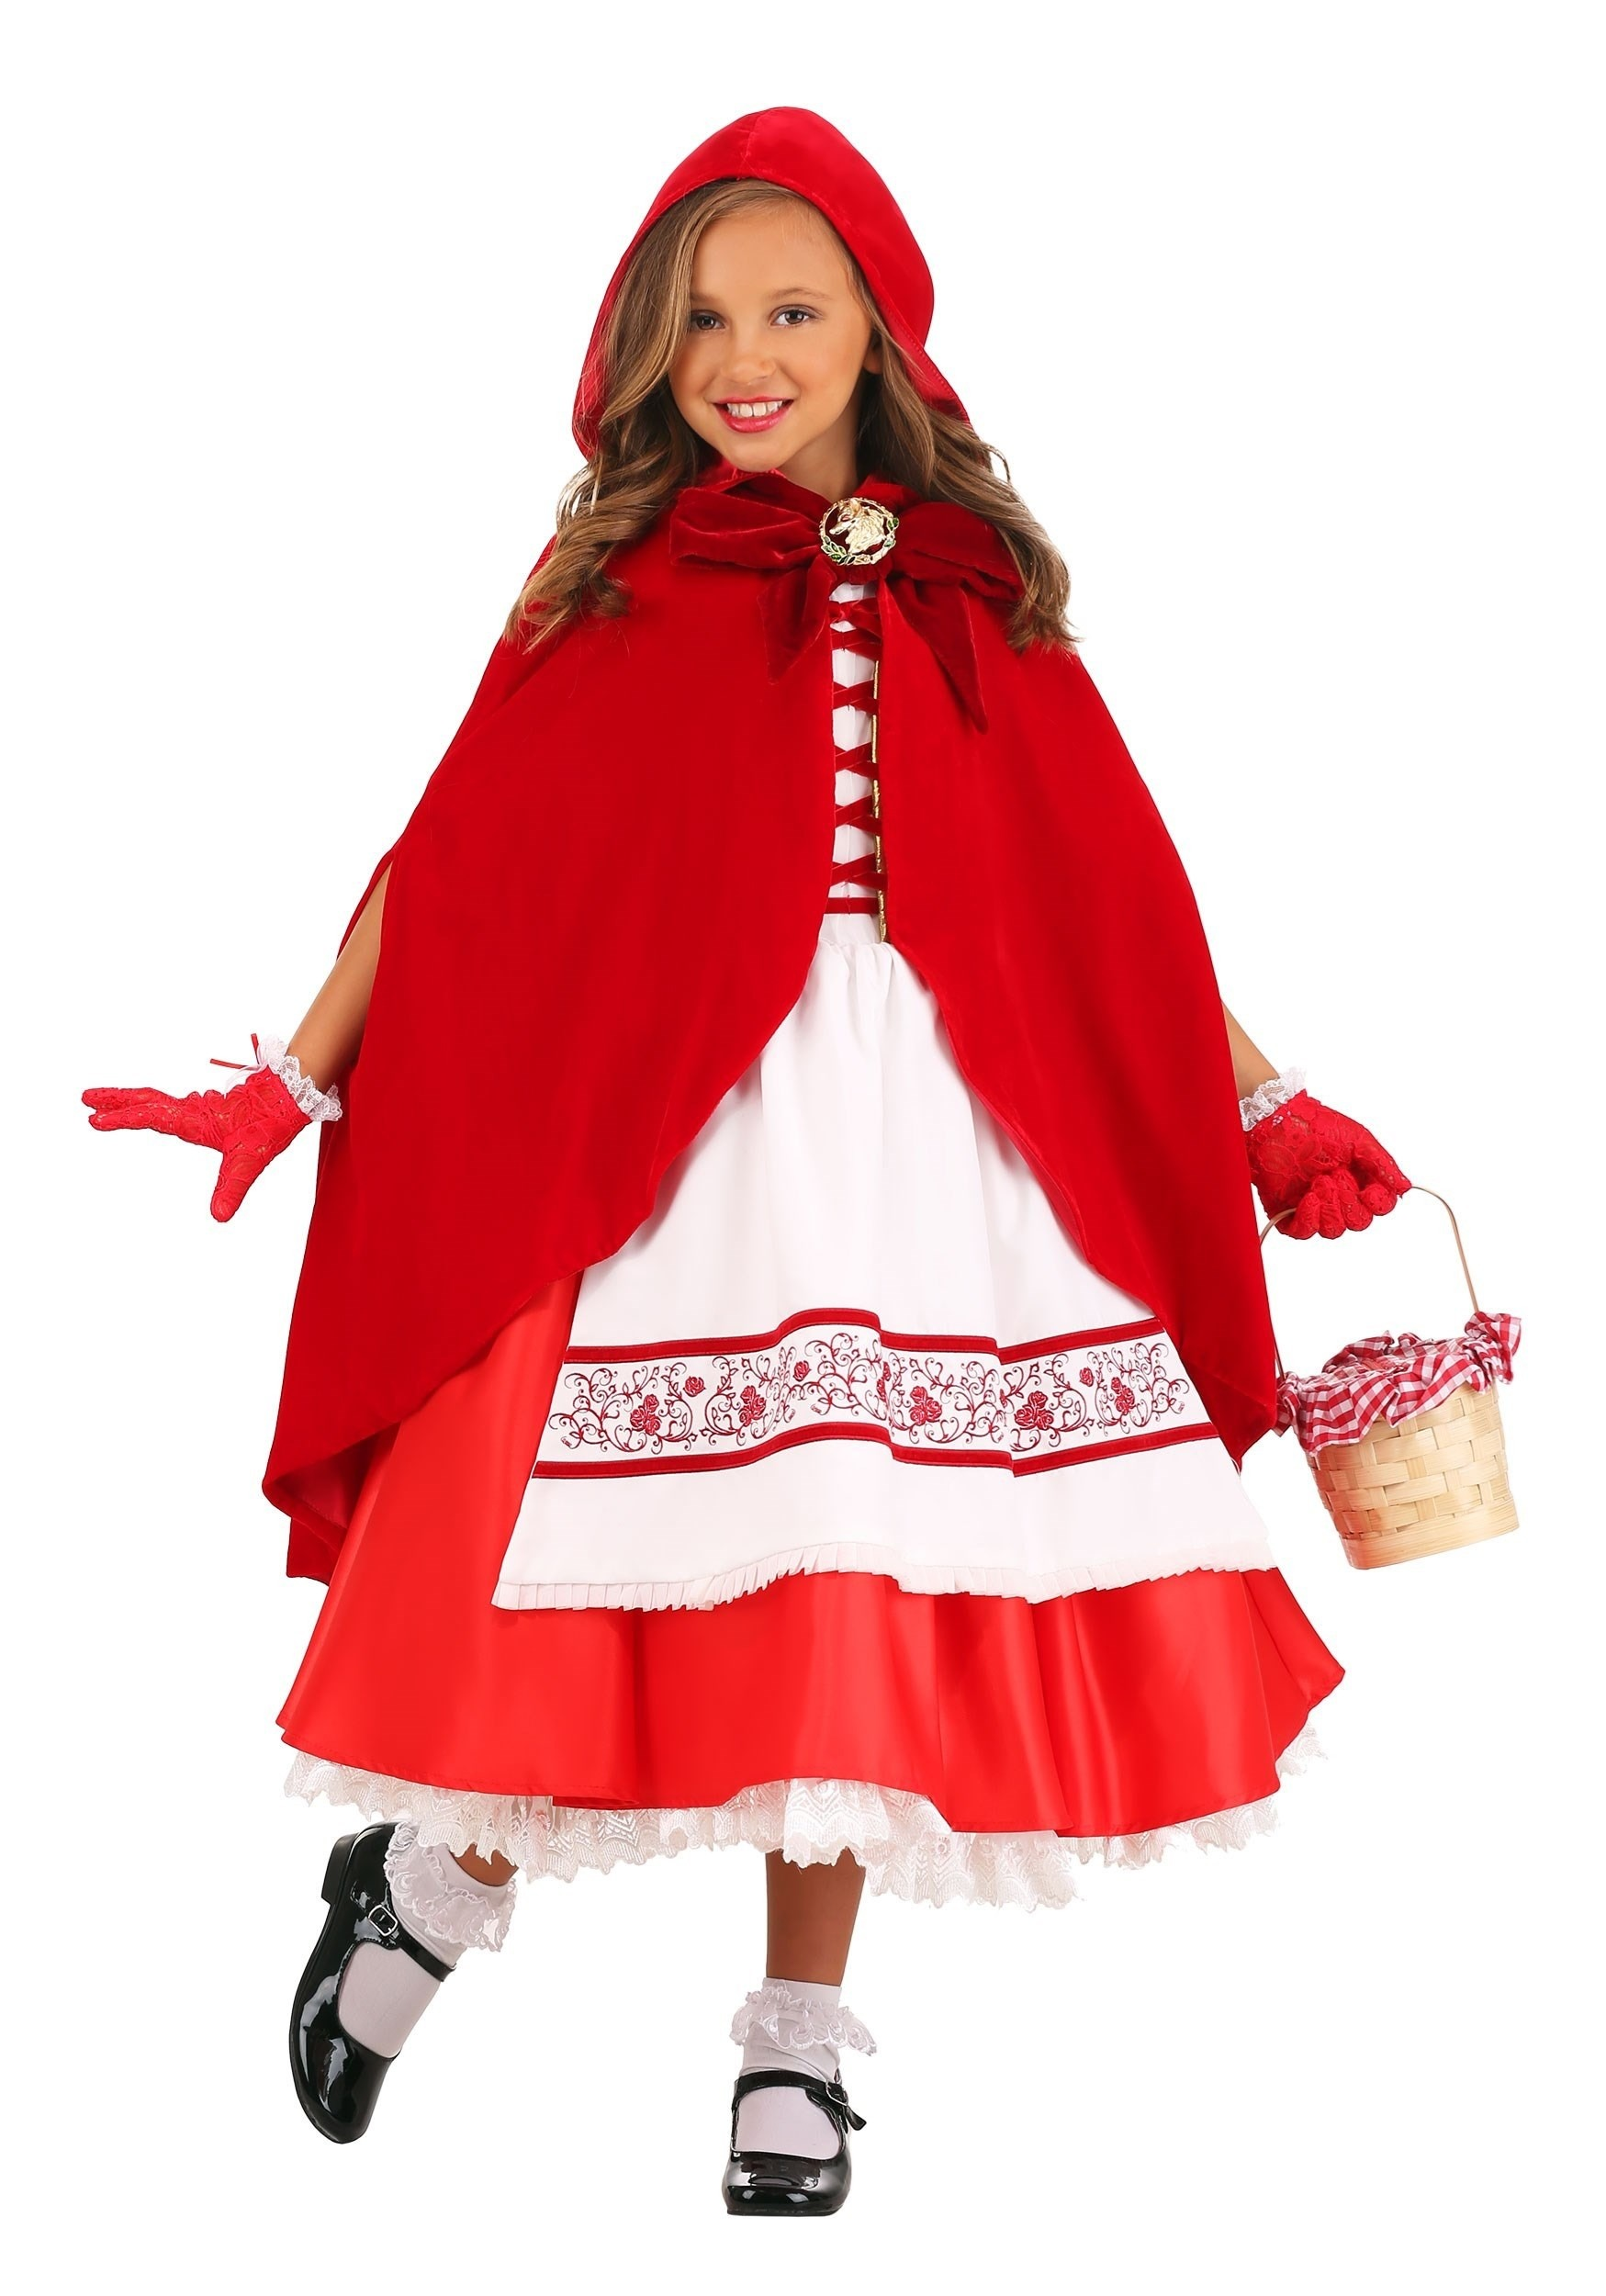 Premium Red Riding Hood Costume for Girls